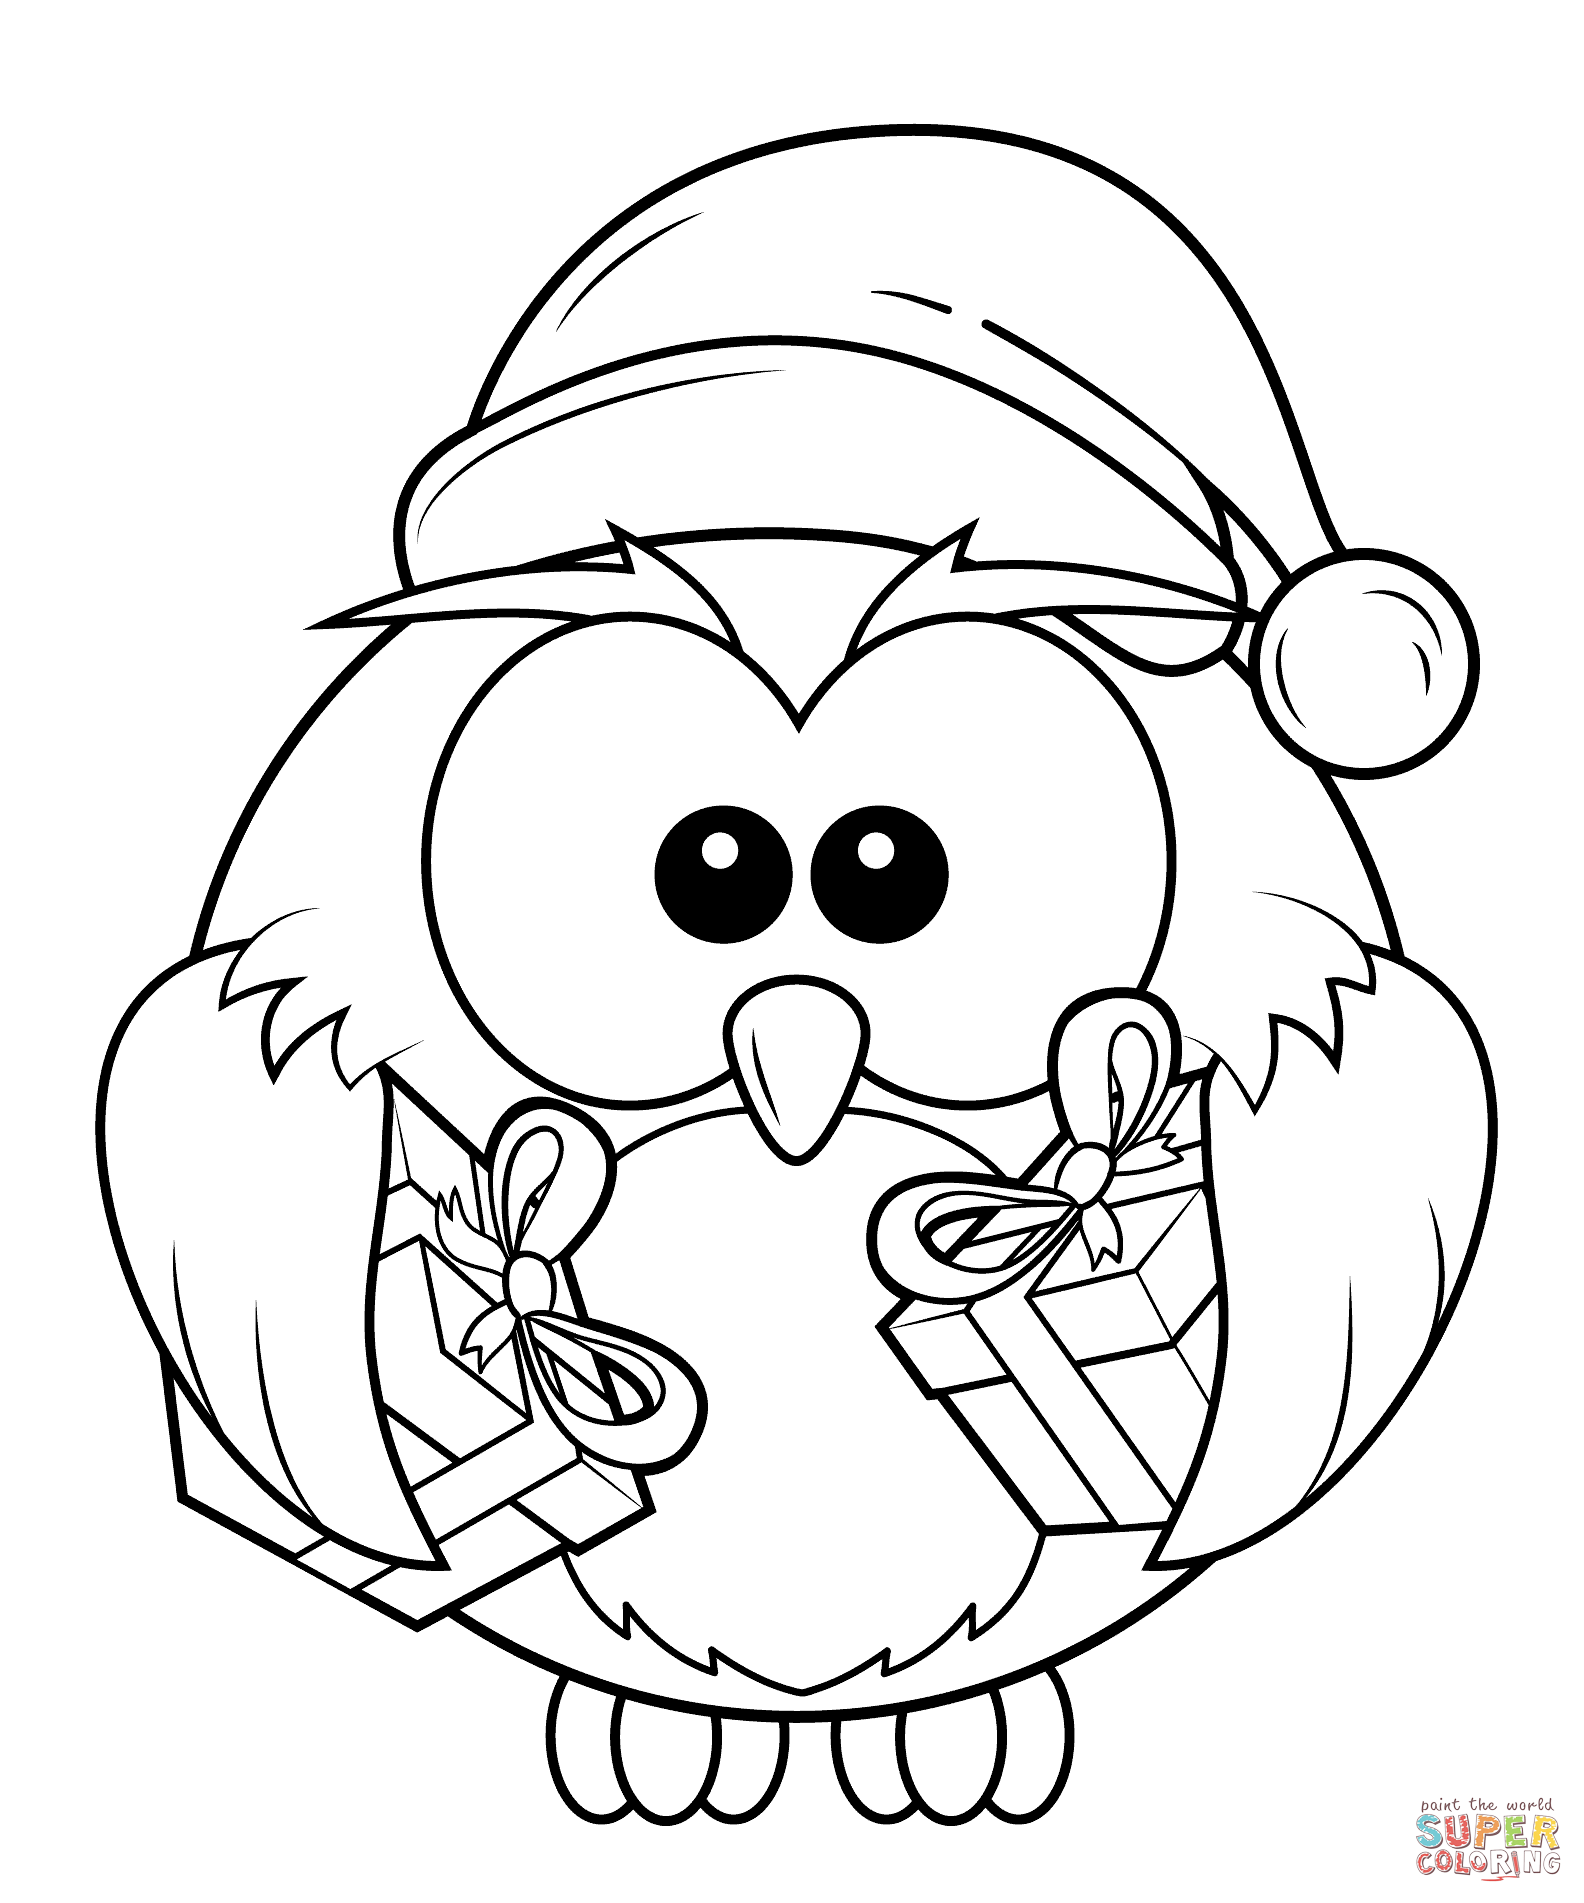 Owl Christmas Coloring Pages 3 By Kyle Owl Coloring Pages Pikachu Coloring Page Christmas Pictures To Color